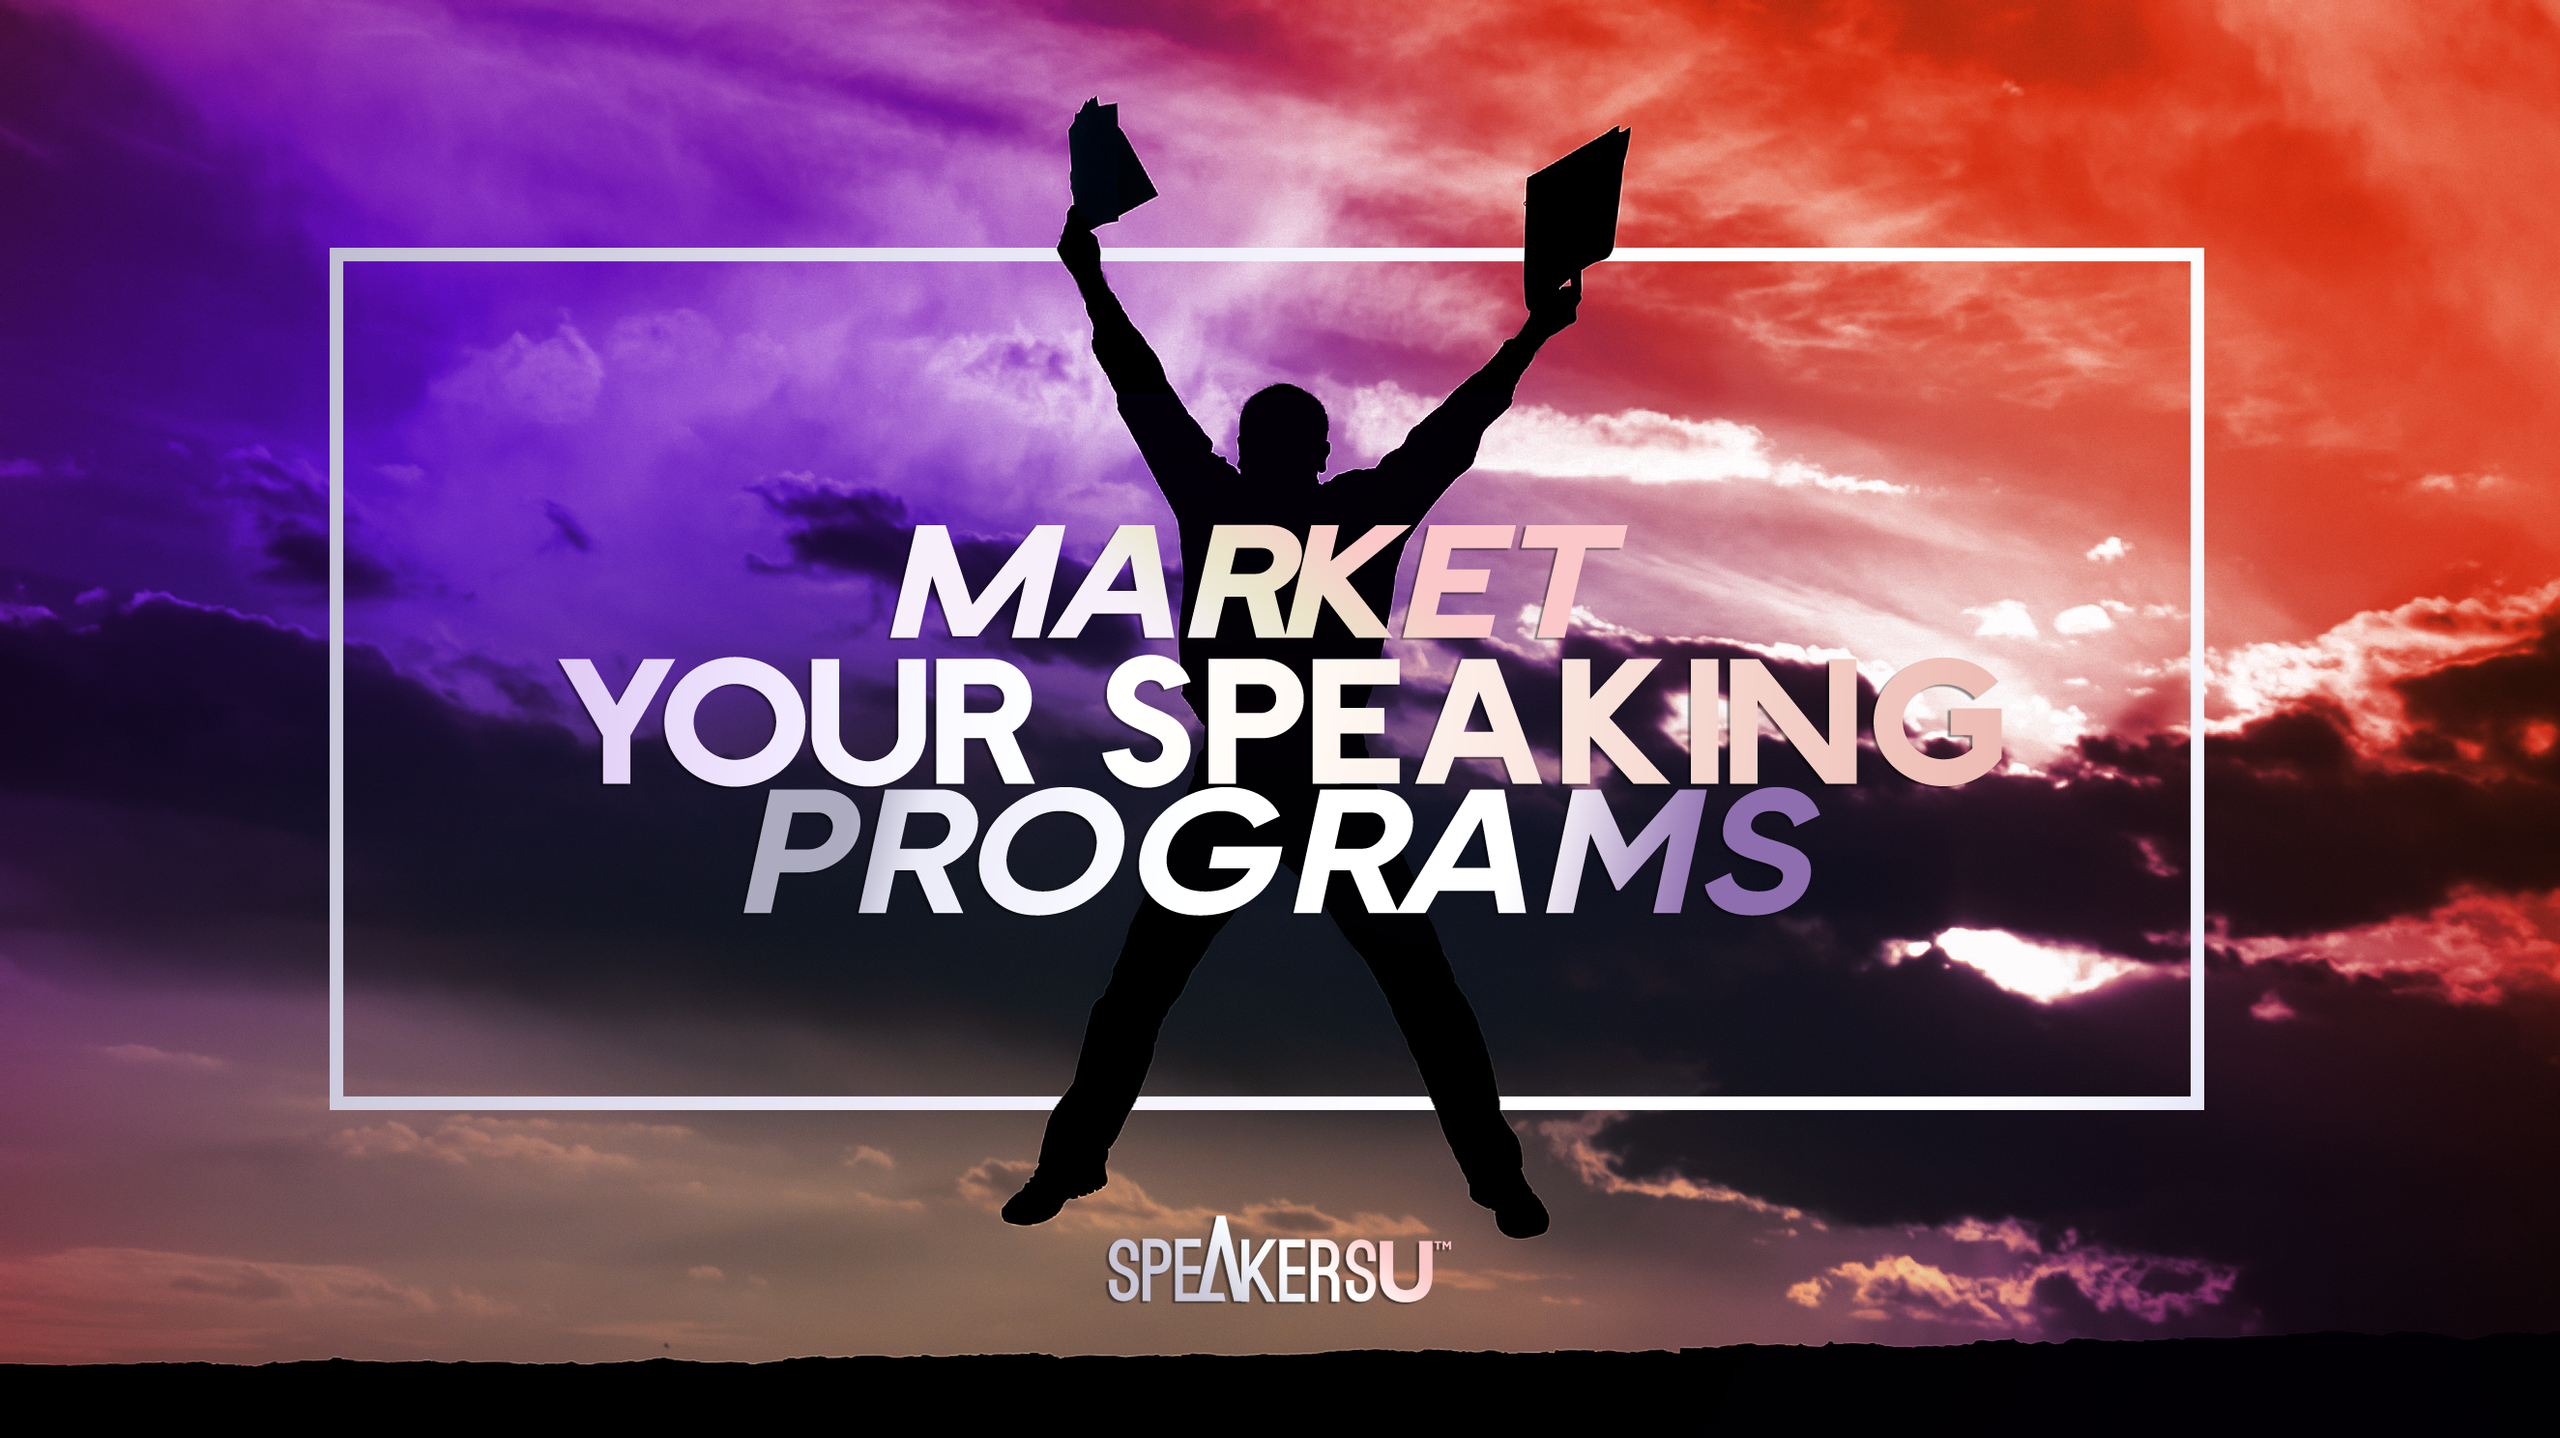 How To Market Your Speaking Programs